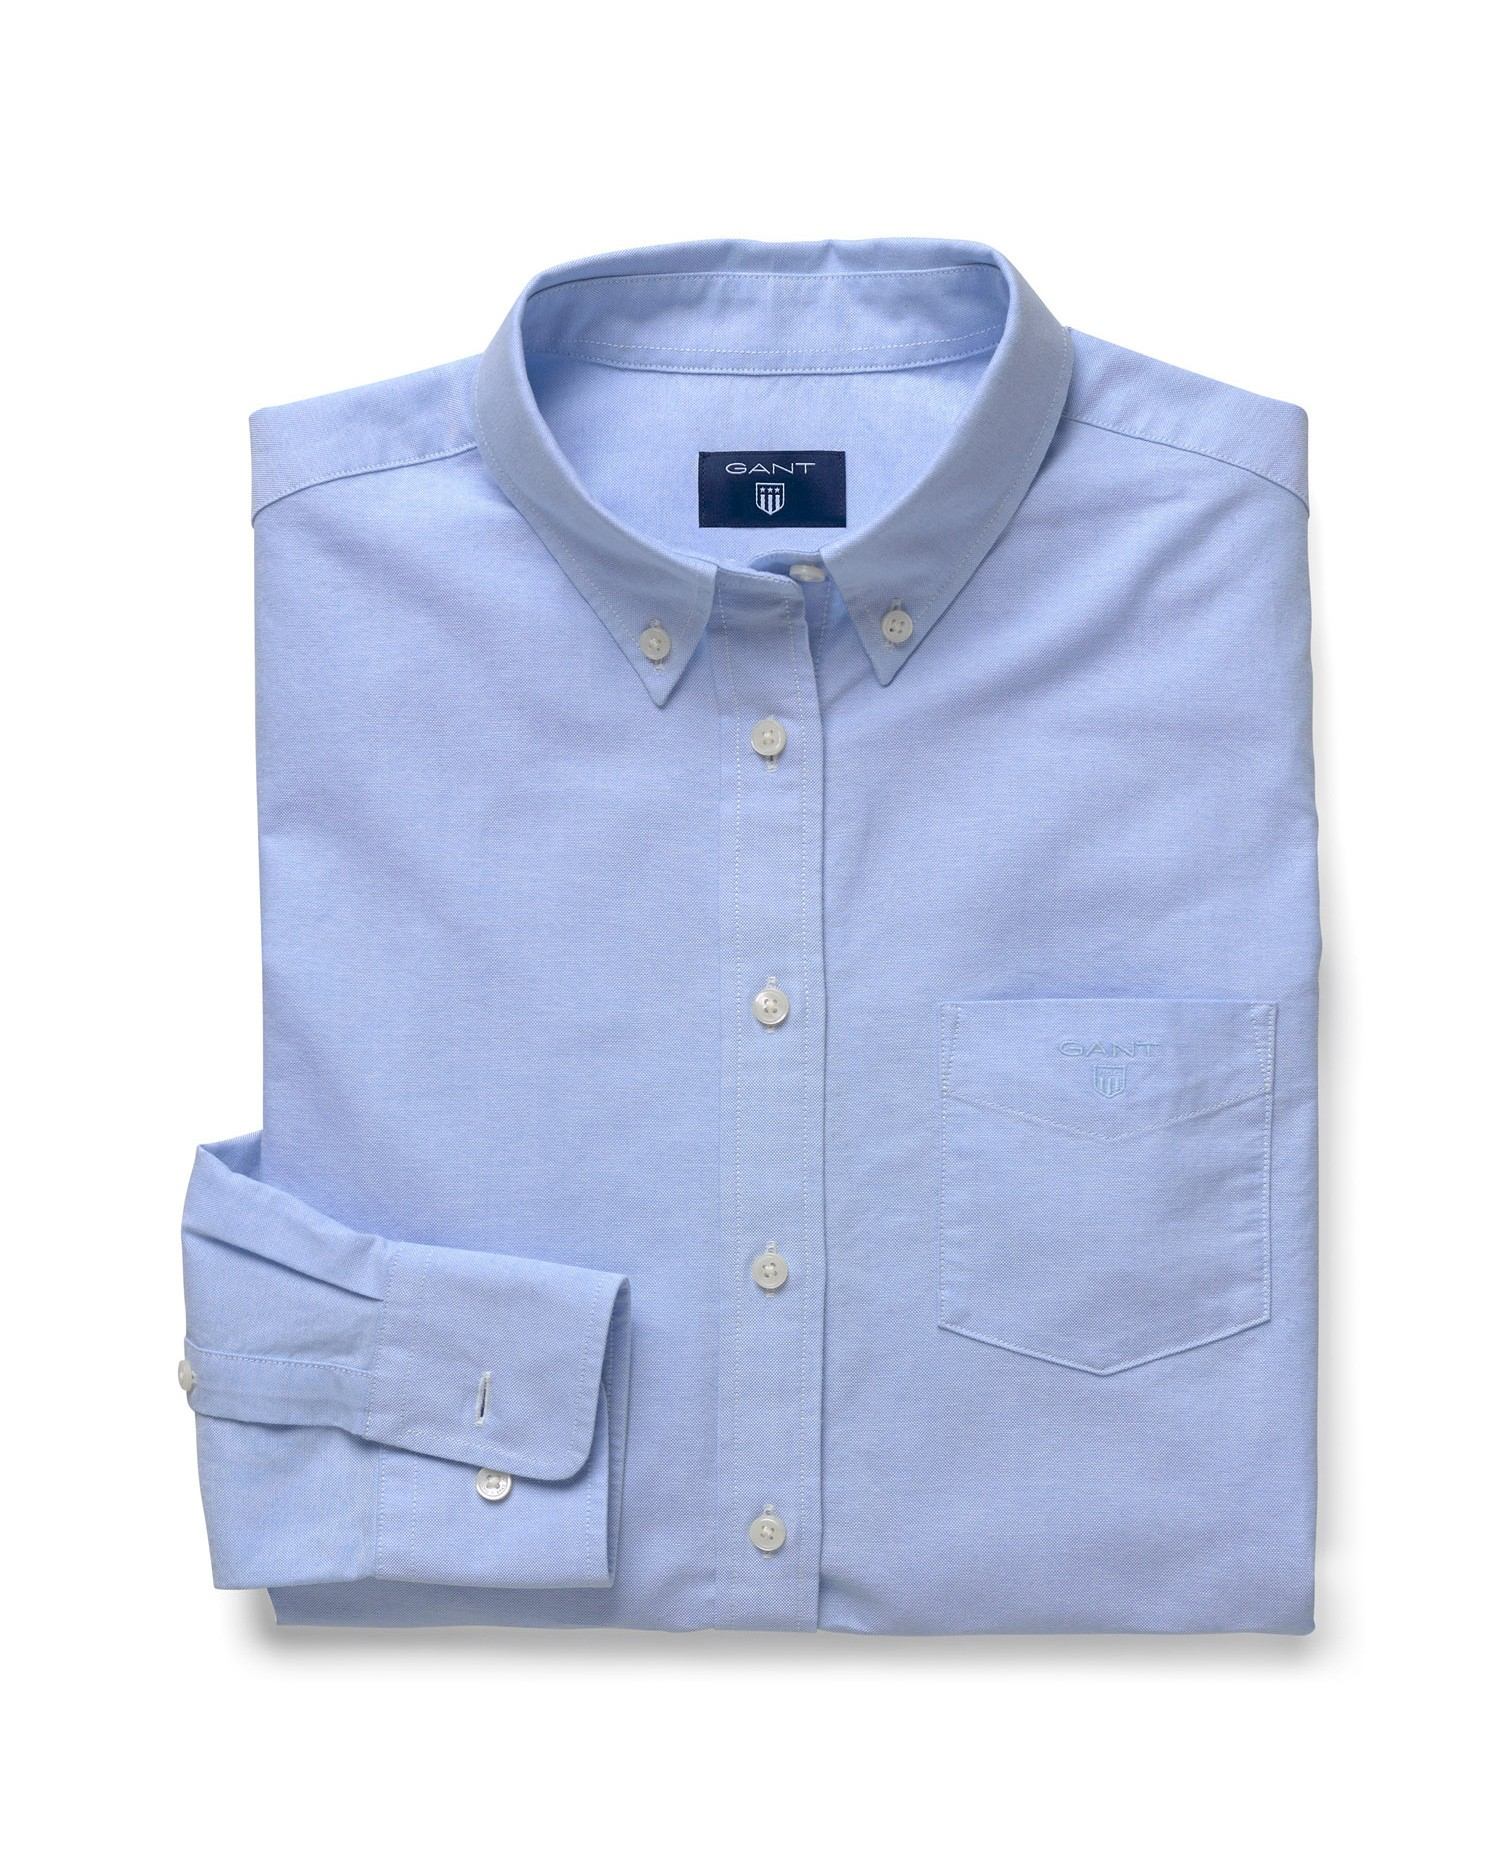 GANT Women's Perfect Oxford Shirt - 4300000